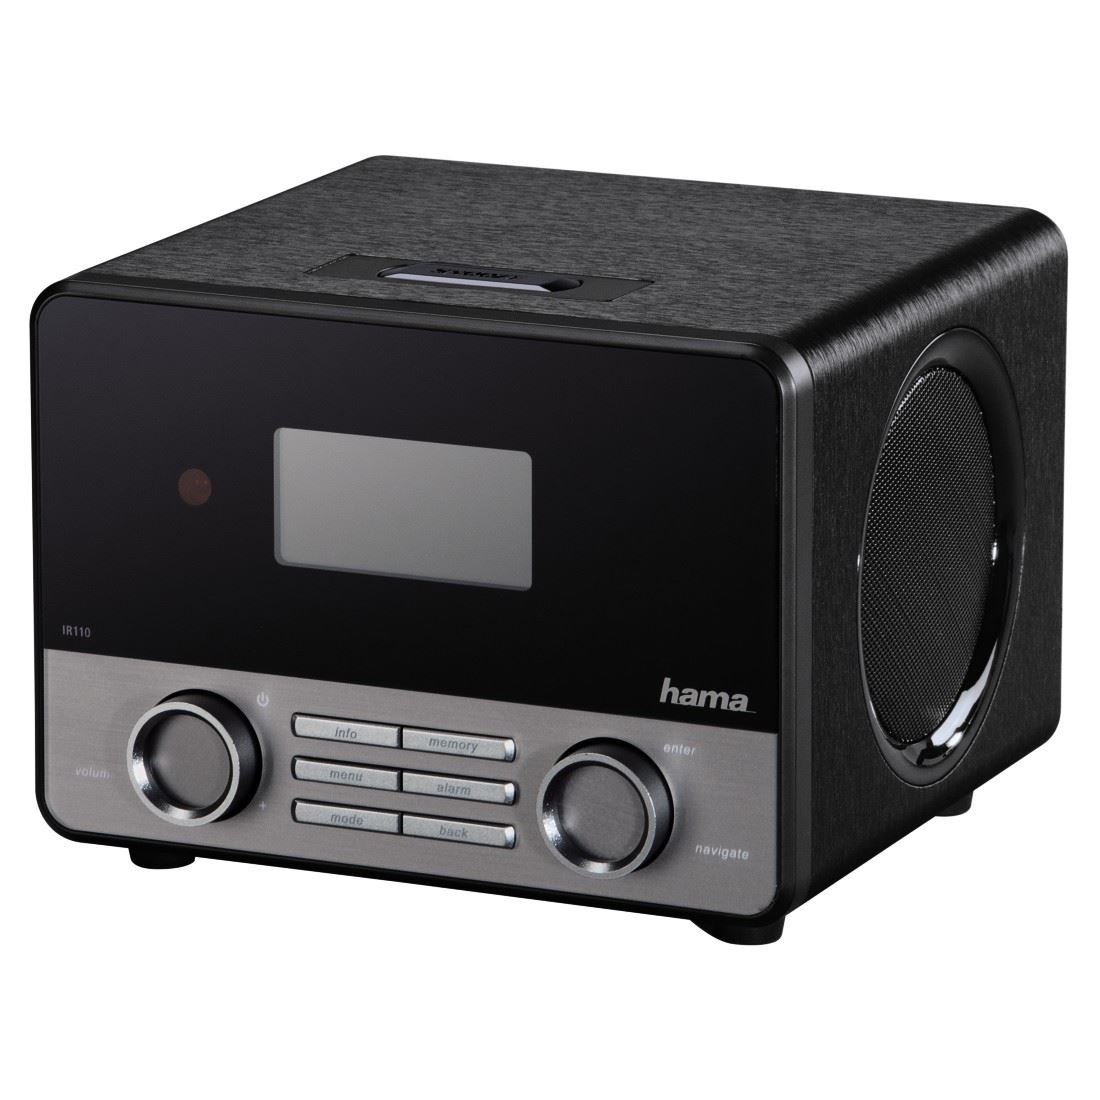 Electrical Appliances Online picture Hama IR110 Internet Radio